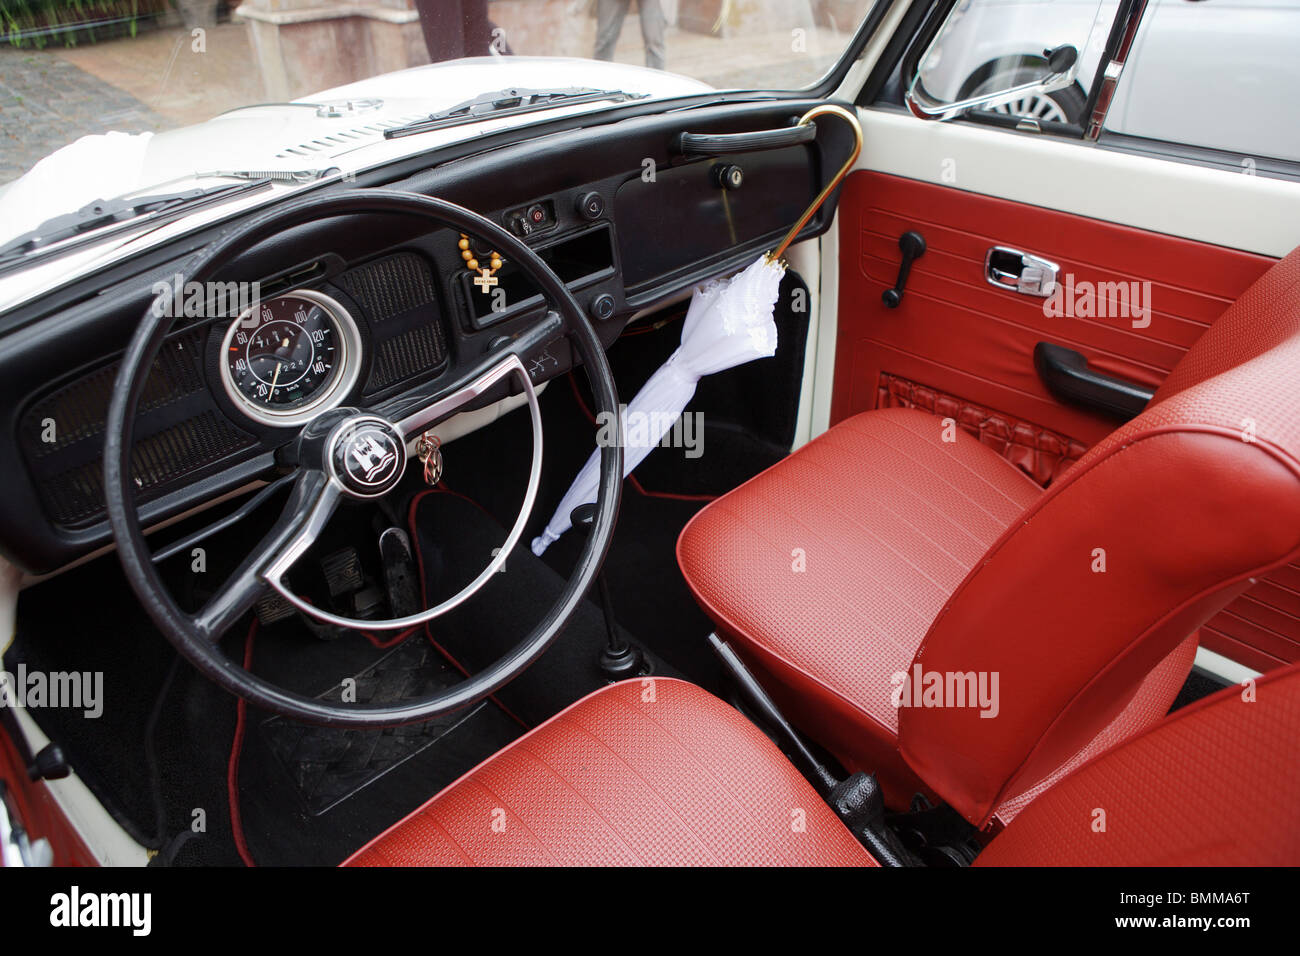 old car Volkswagen Beetle interior vintage collection spot Stock ...